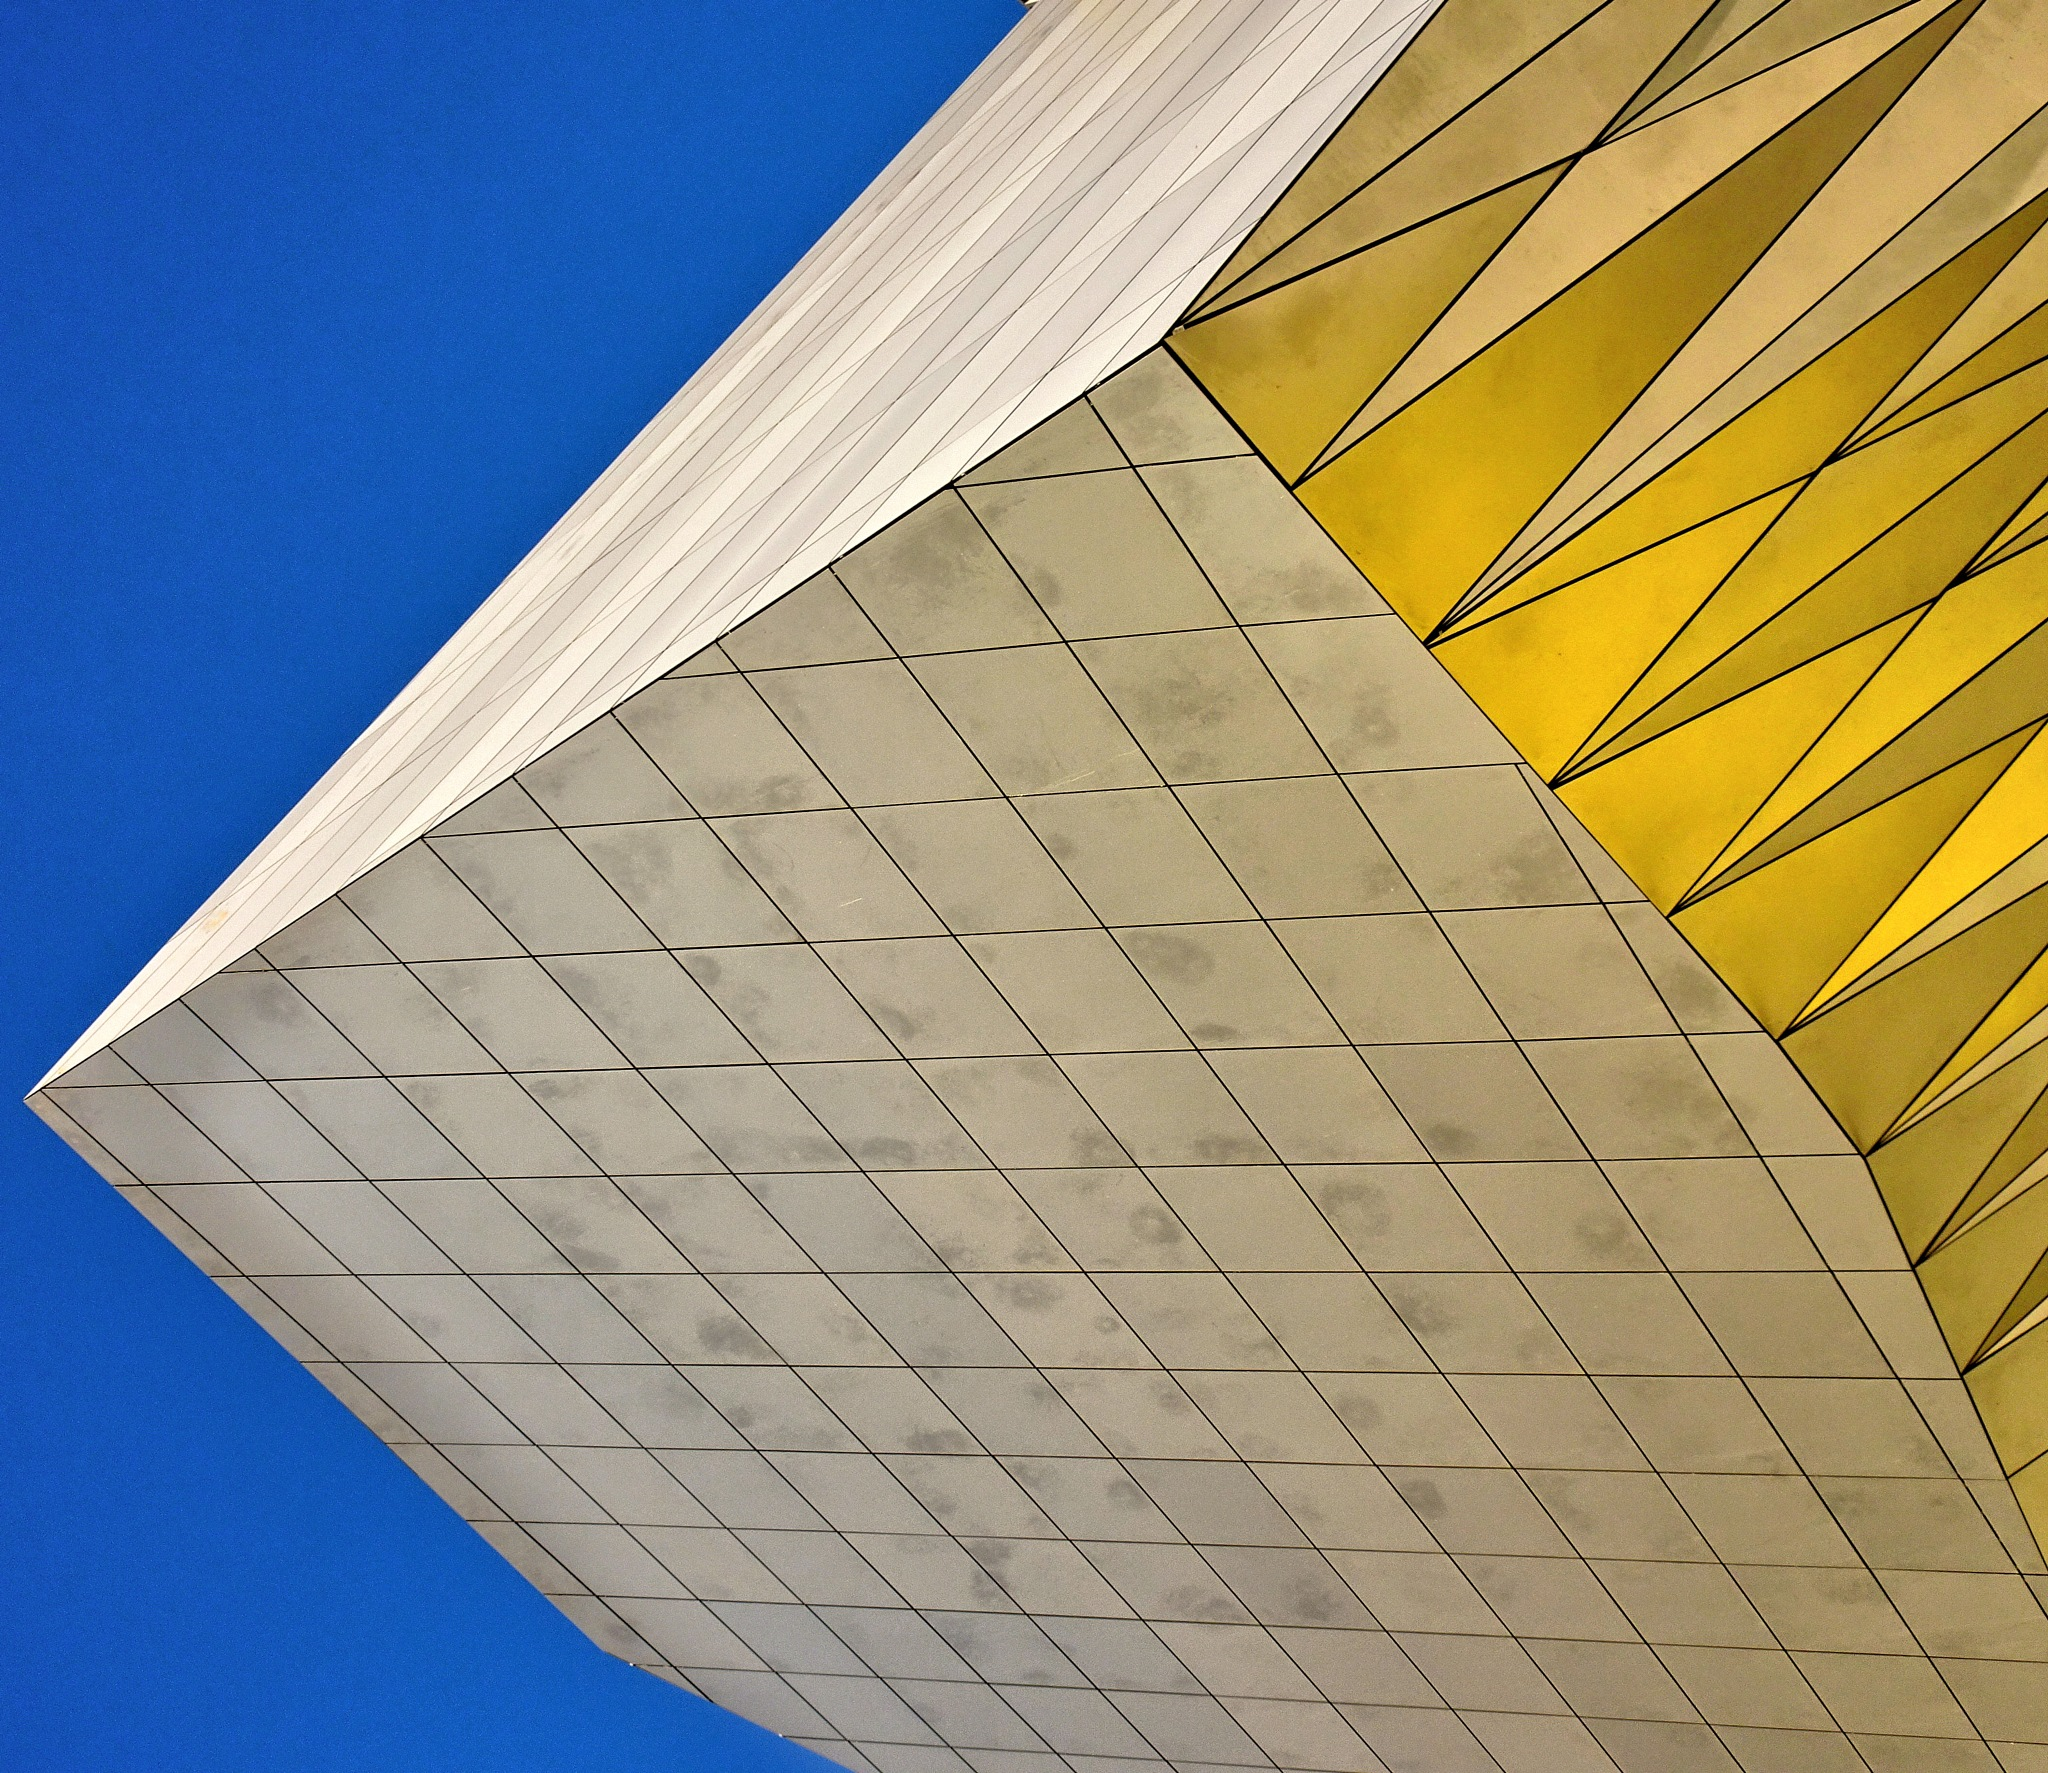 Pointe architecturale by lonysd